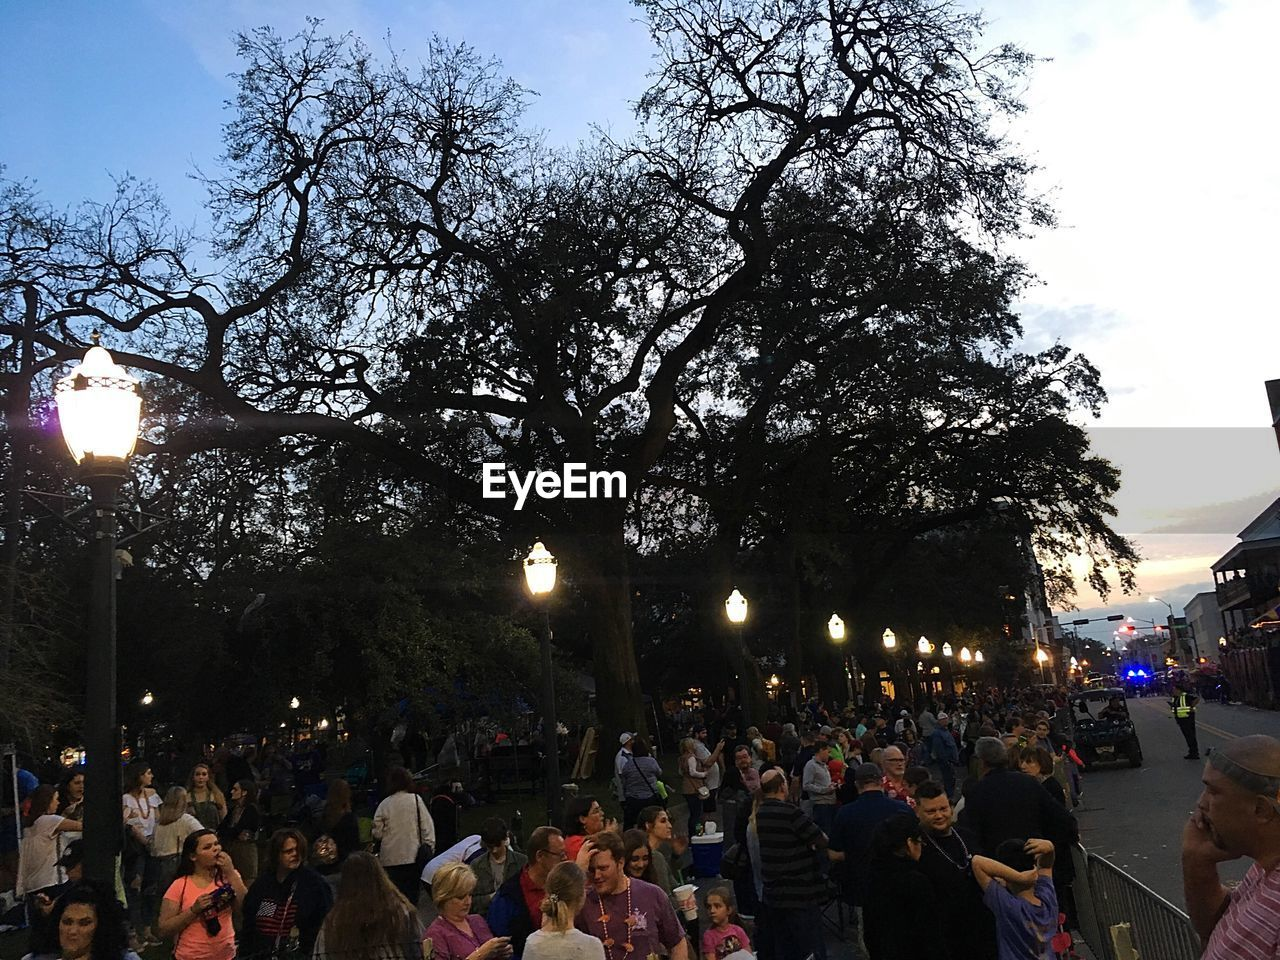 crowd, group of people, large group of people, real people, tree, illuminated, street, city, architecture, men, street light, nature, sky, plant, lighting equipment, women, building exterior, built structure, lifestyles, leisure activity, outdoors, light, festival